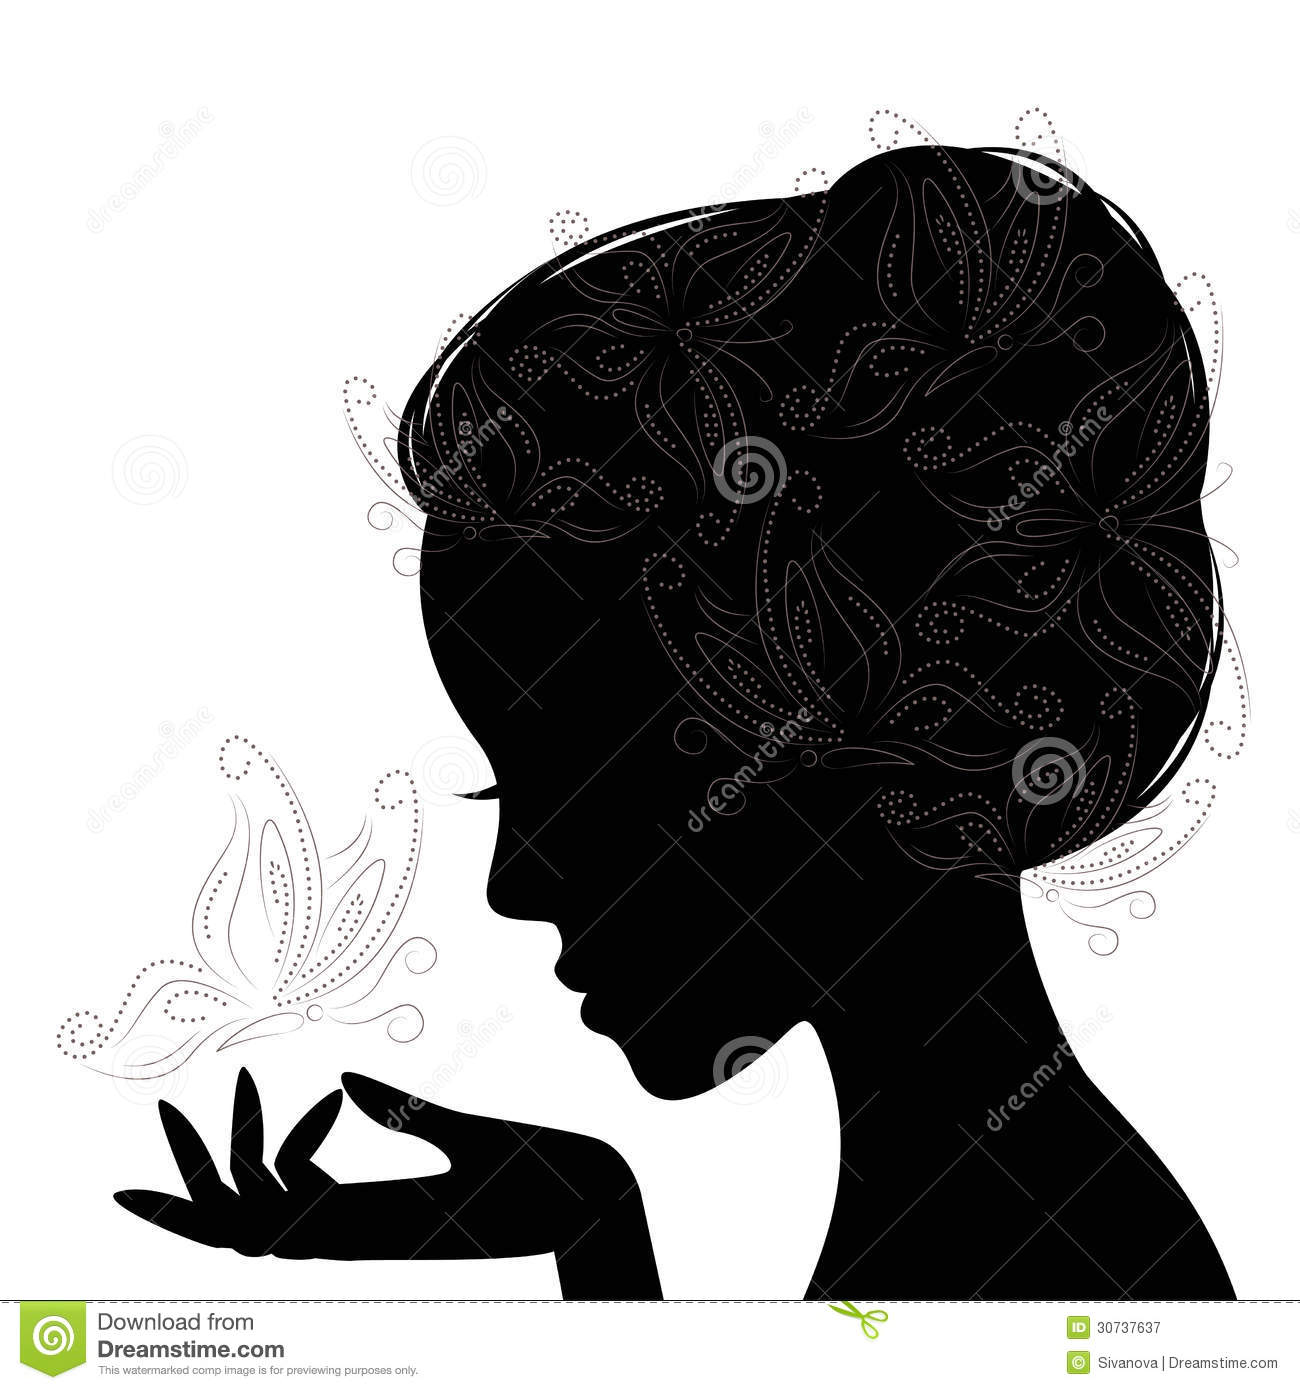 Hand Drawing Diagram Royalty Free Stock Photography Image 28235887